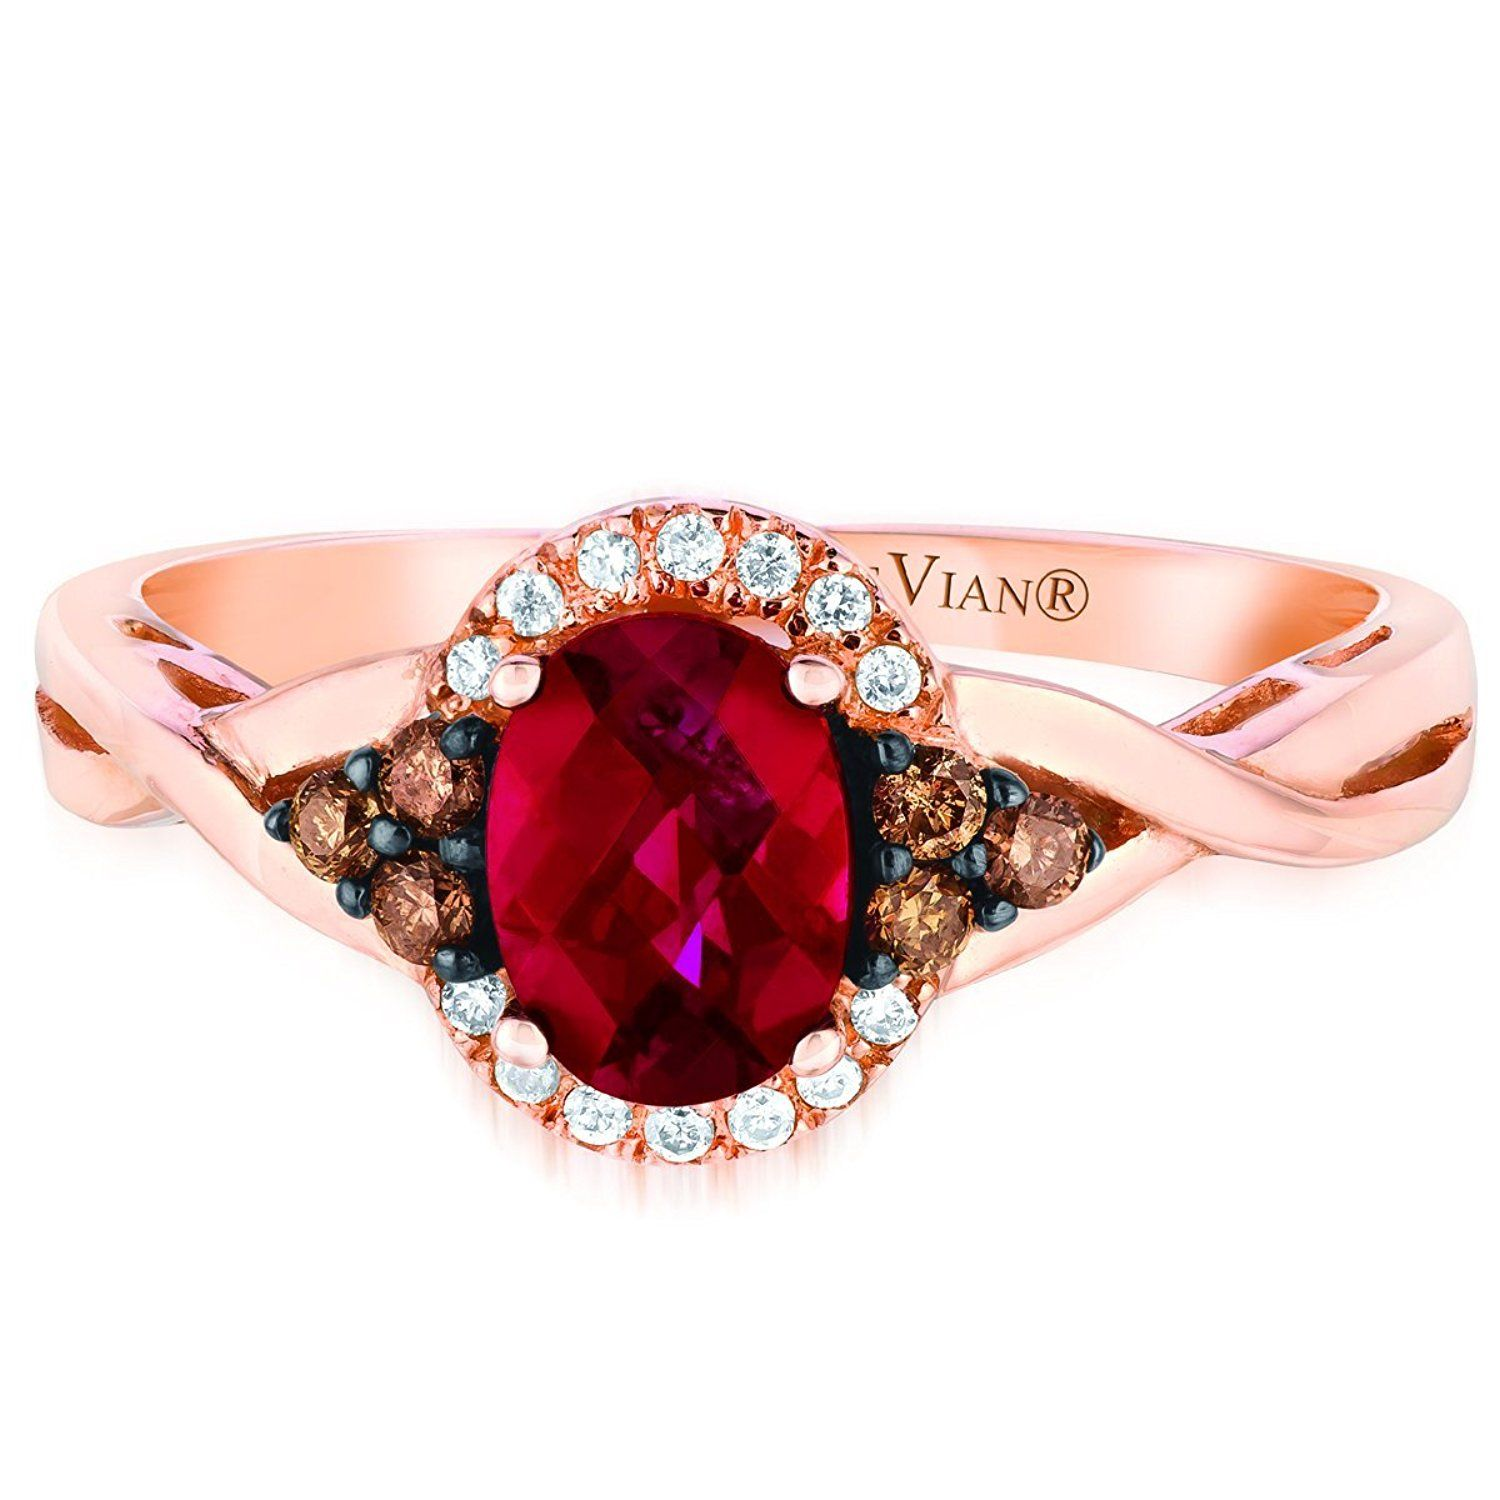 number strawberry le rhodolite brand category gold jones rings product diamond occasion garnet webstore vian ring ernest jewellery engagement l